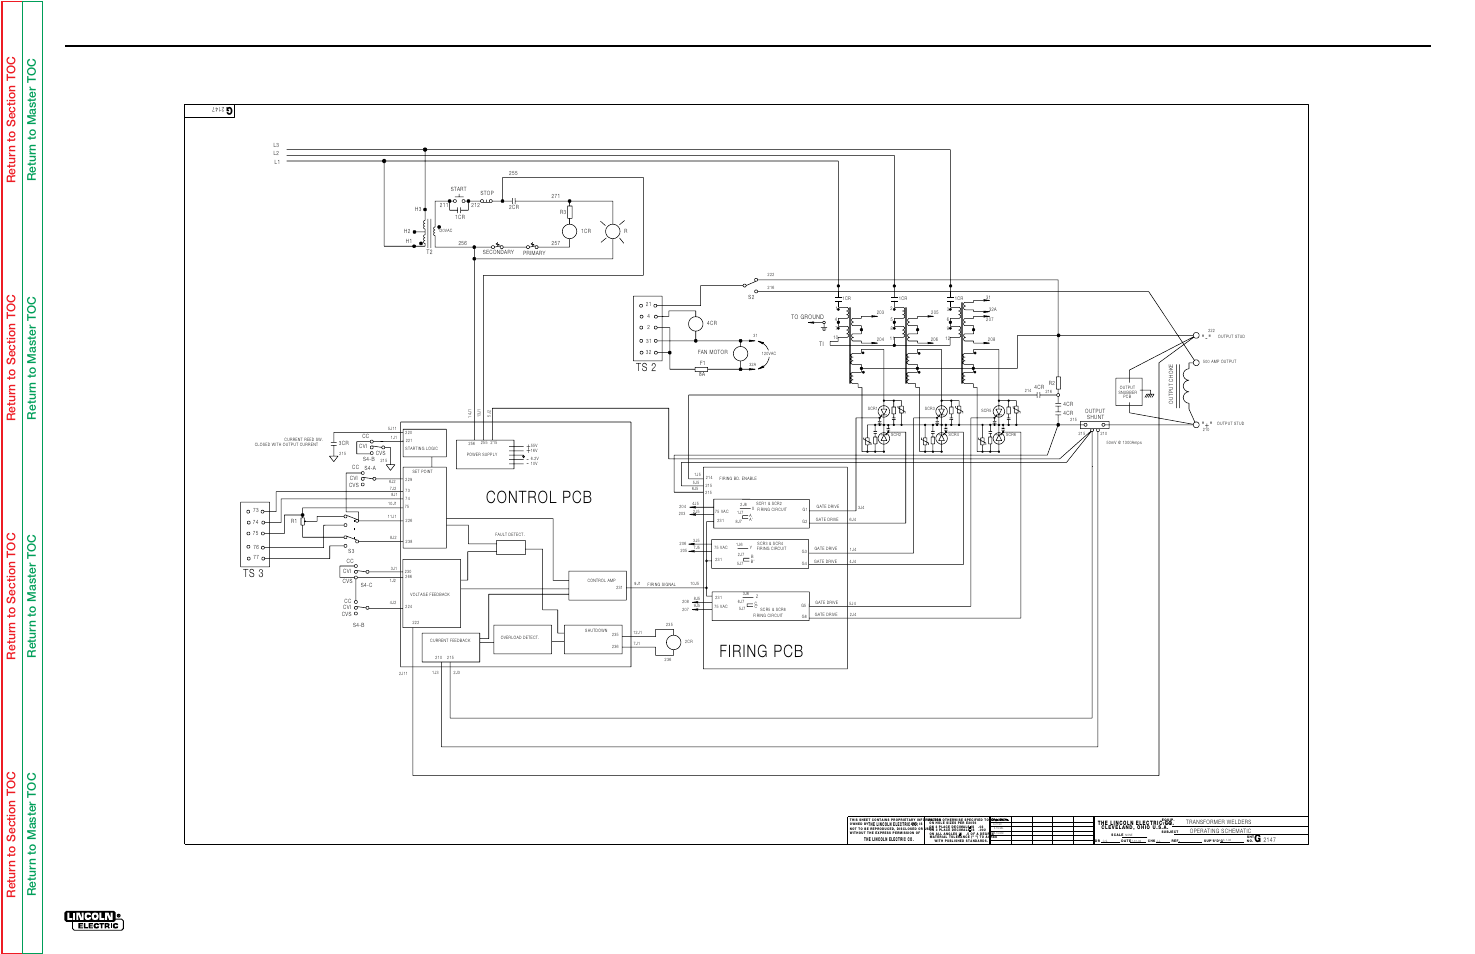 110 Electrical Schematic Wiring Diagram Electrical Diagrams Operating Schematic Idealarc Dc1000